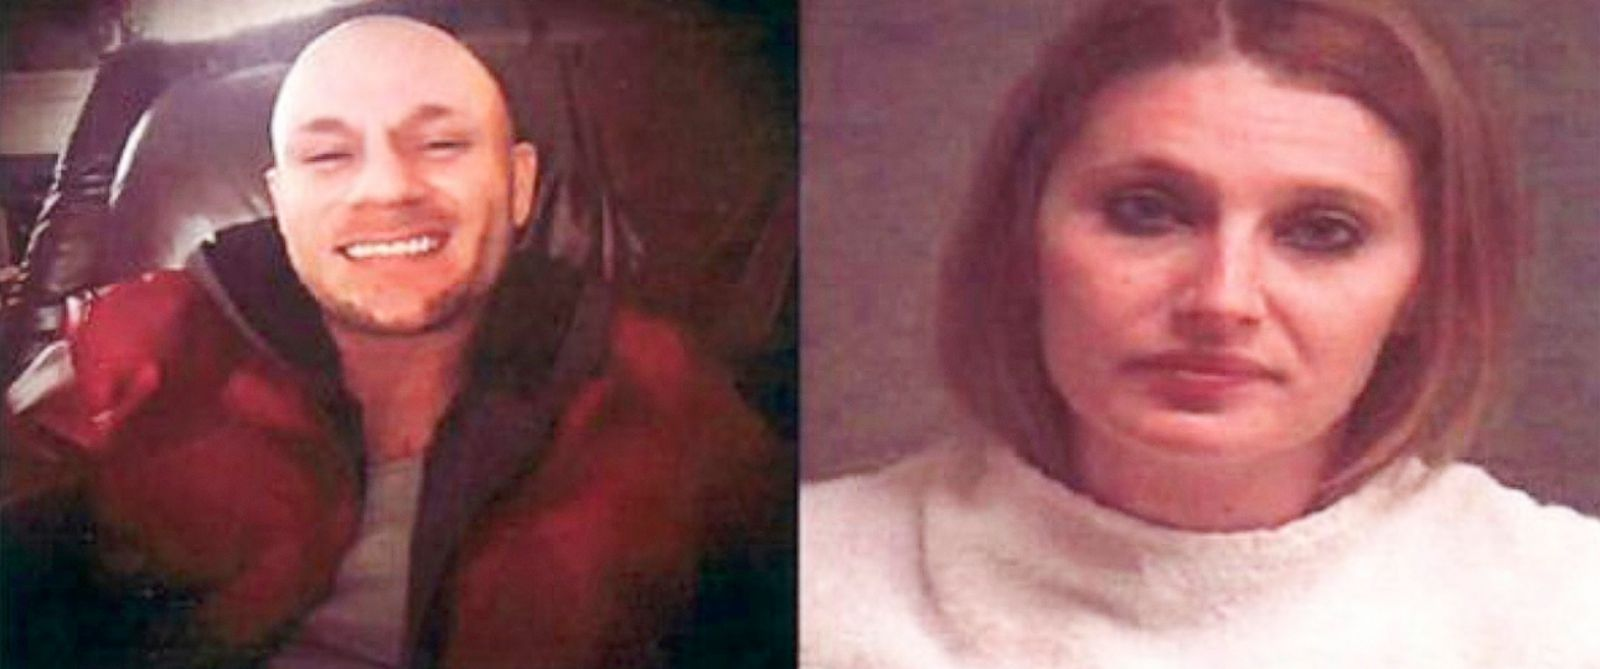 PHOTO:This composite photo released by Perry, Ga., Police Department shows photos of Blake Fitzgerald and Brittany Nicole Harper of Joplin, Mo., who are wanted in connection with a series of robberies and kidnappings in Georgia and Alabama.